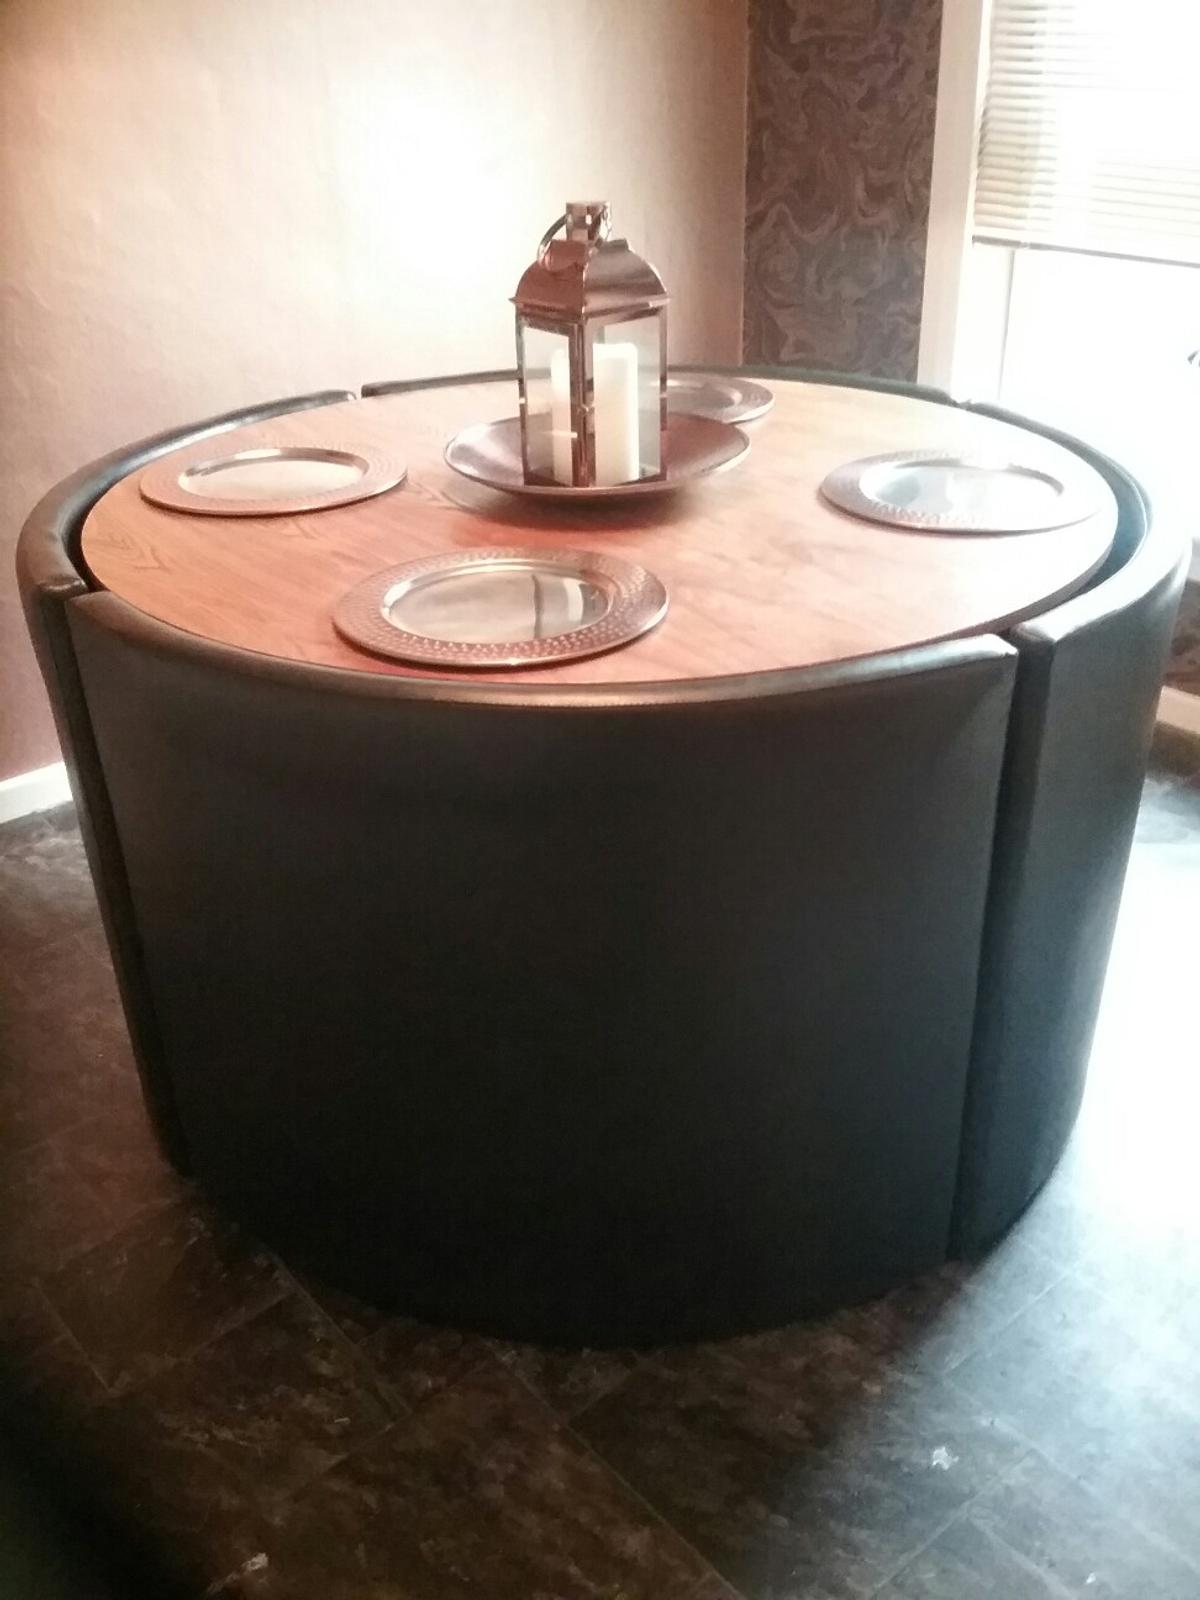 Picture of: Dining Room Table And Booth Style Chairs In Eh54 Livingston For 50 00 For Sale Shpock